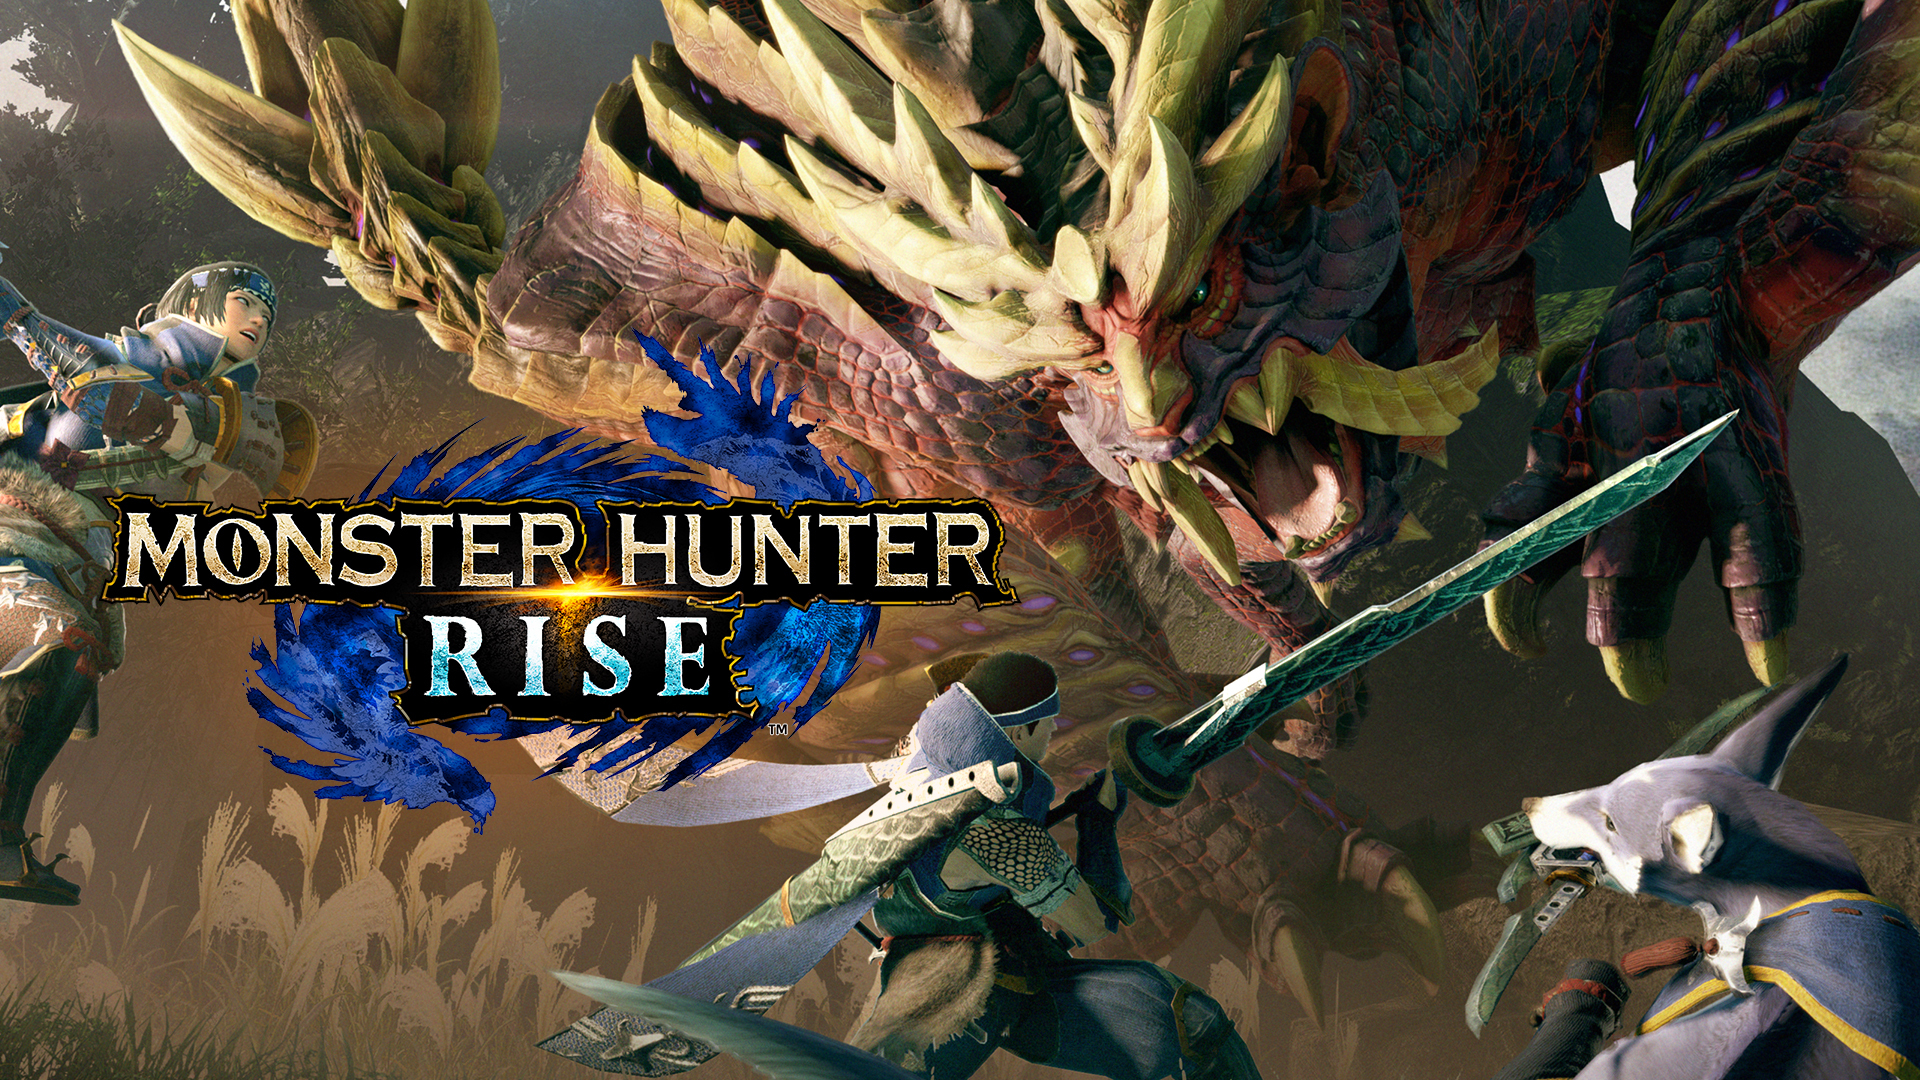 Monster Hunter Rise official artwork